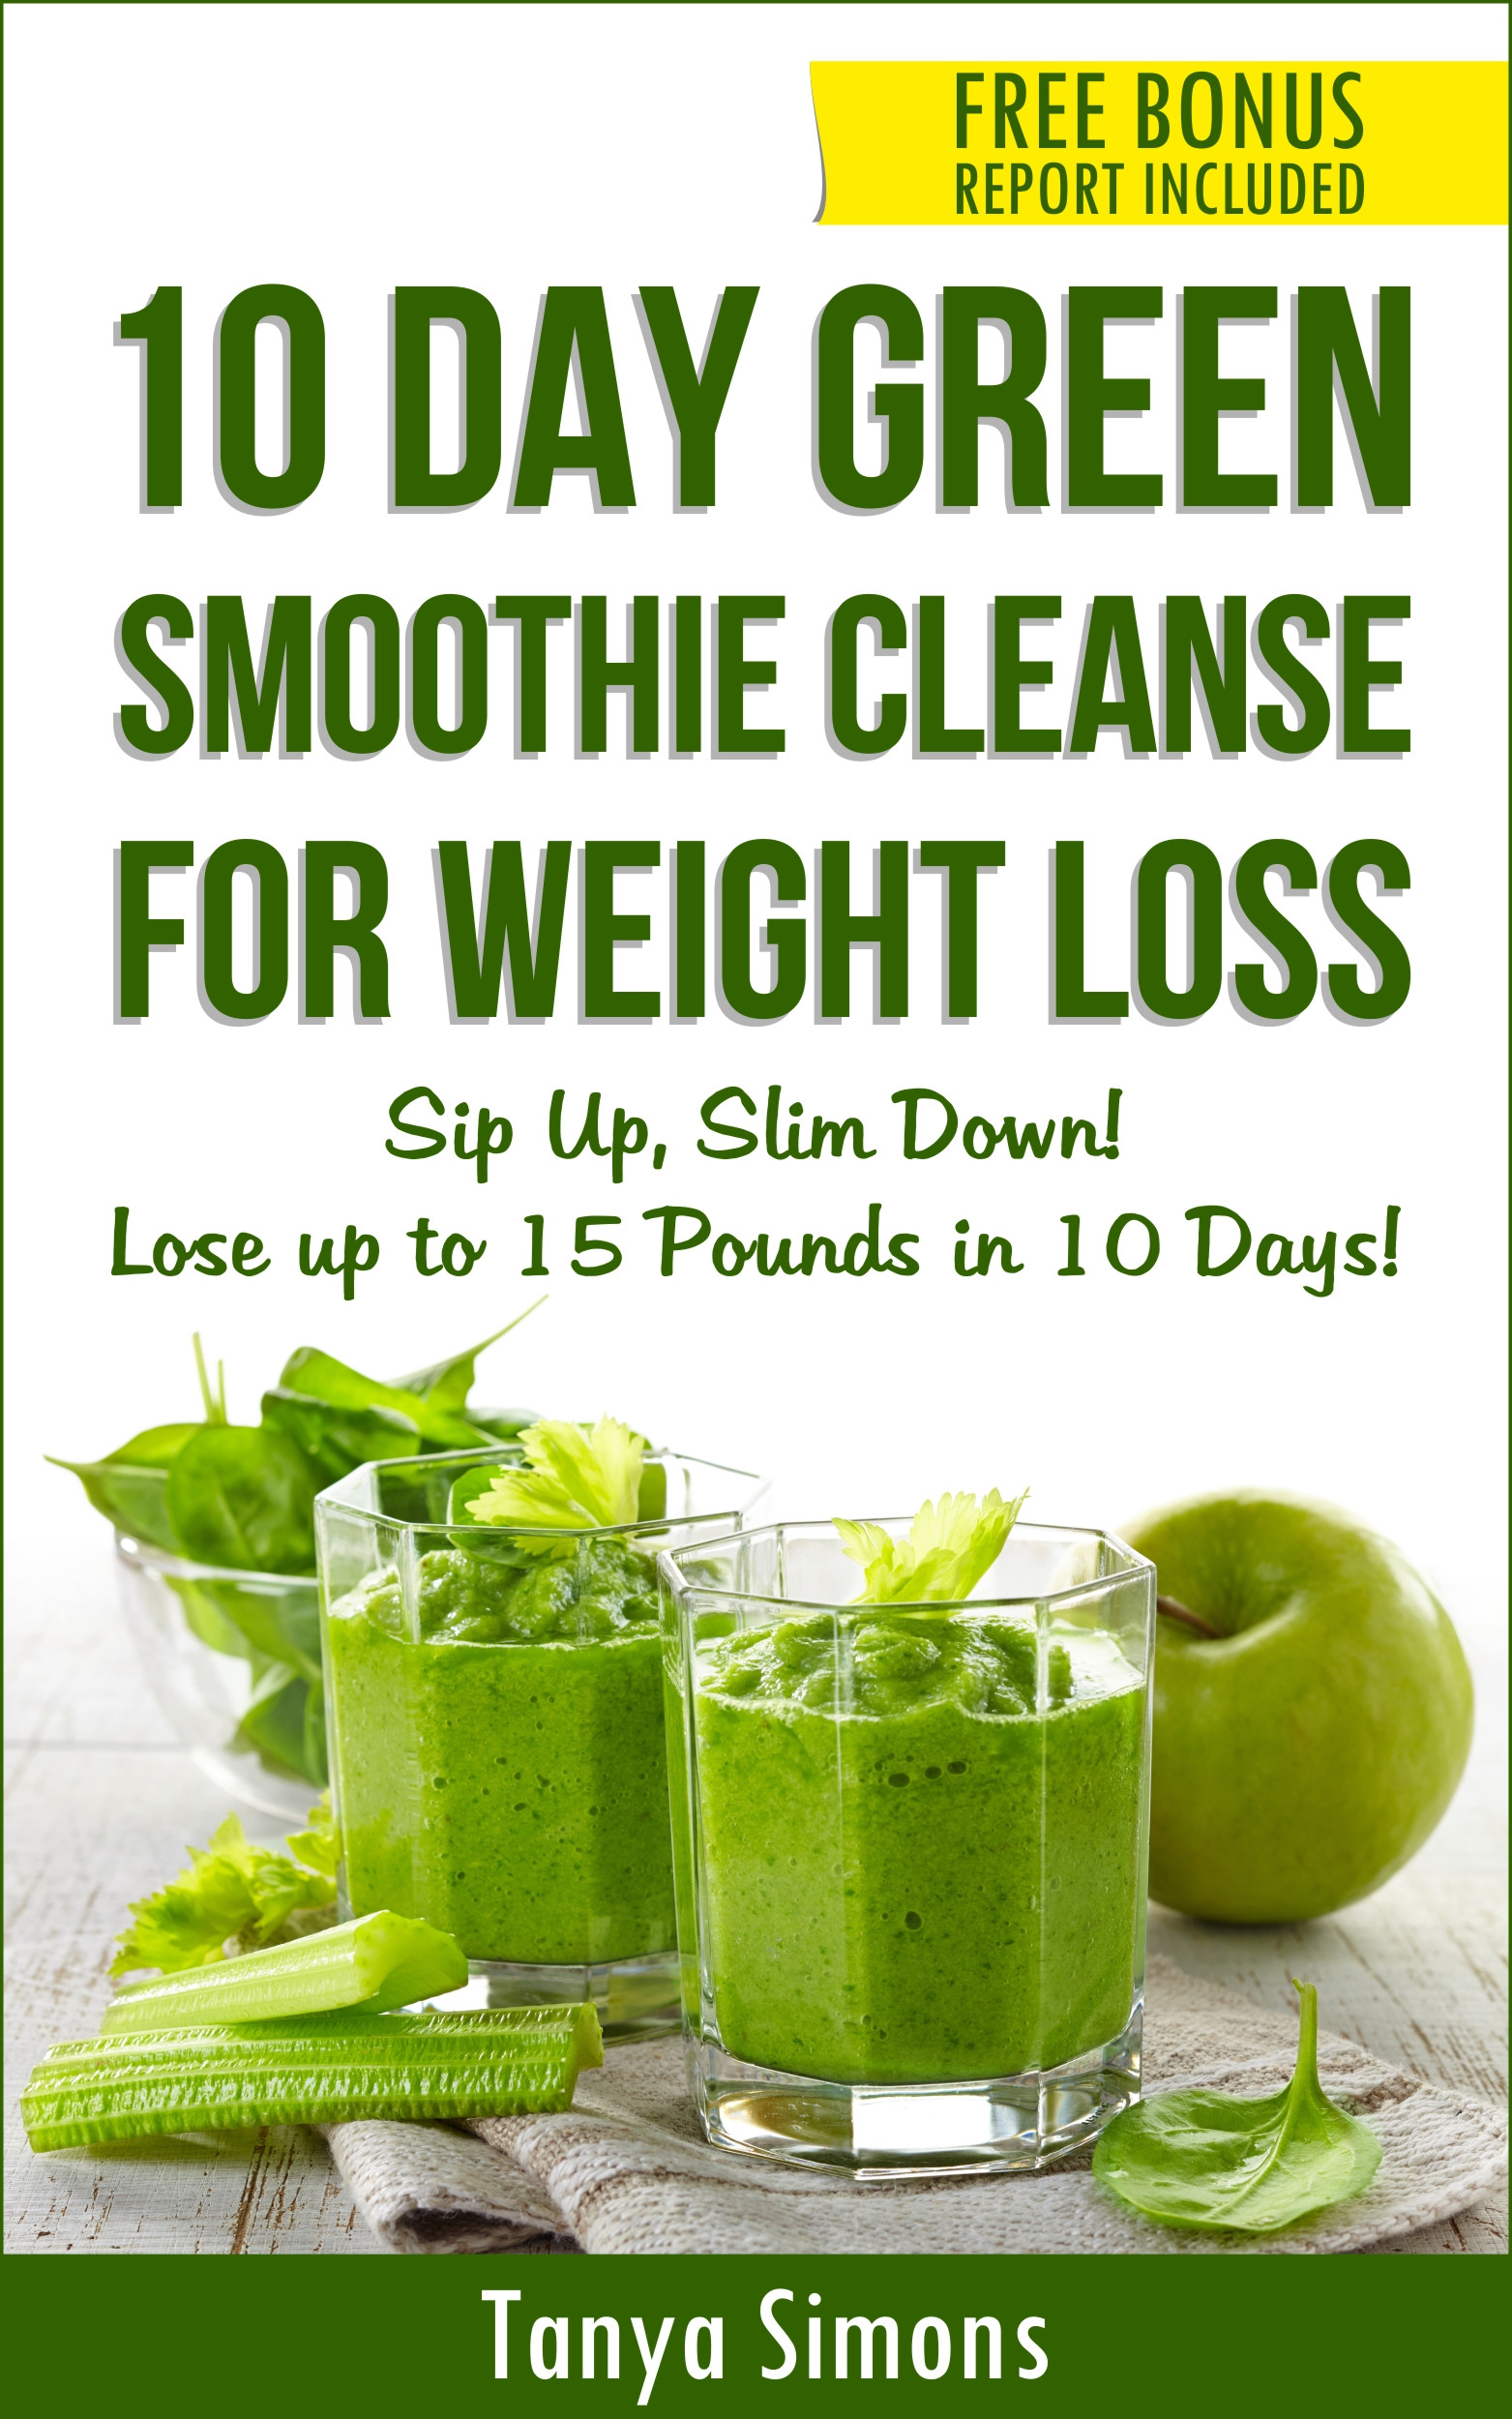 Healthy Green Smoothie Recipes For Weight Loss  10 Day Green Smoothie Cleanse Lose 15lbs with 10 Day